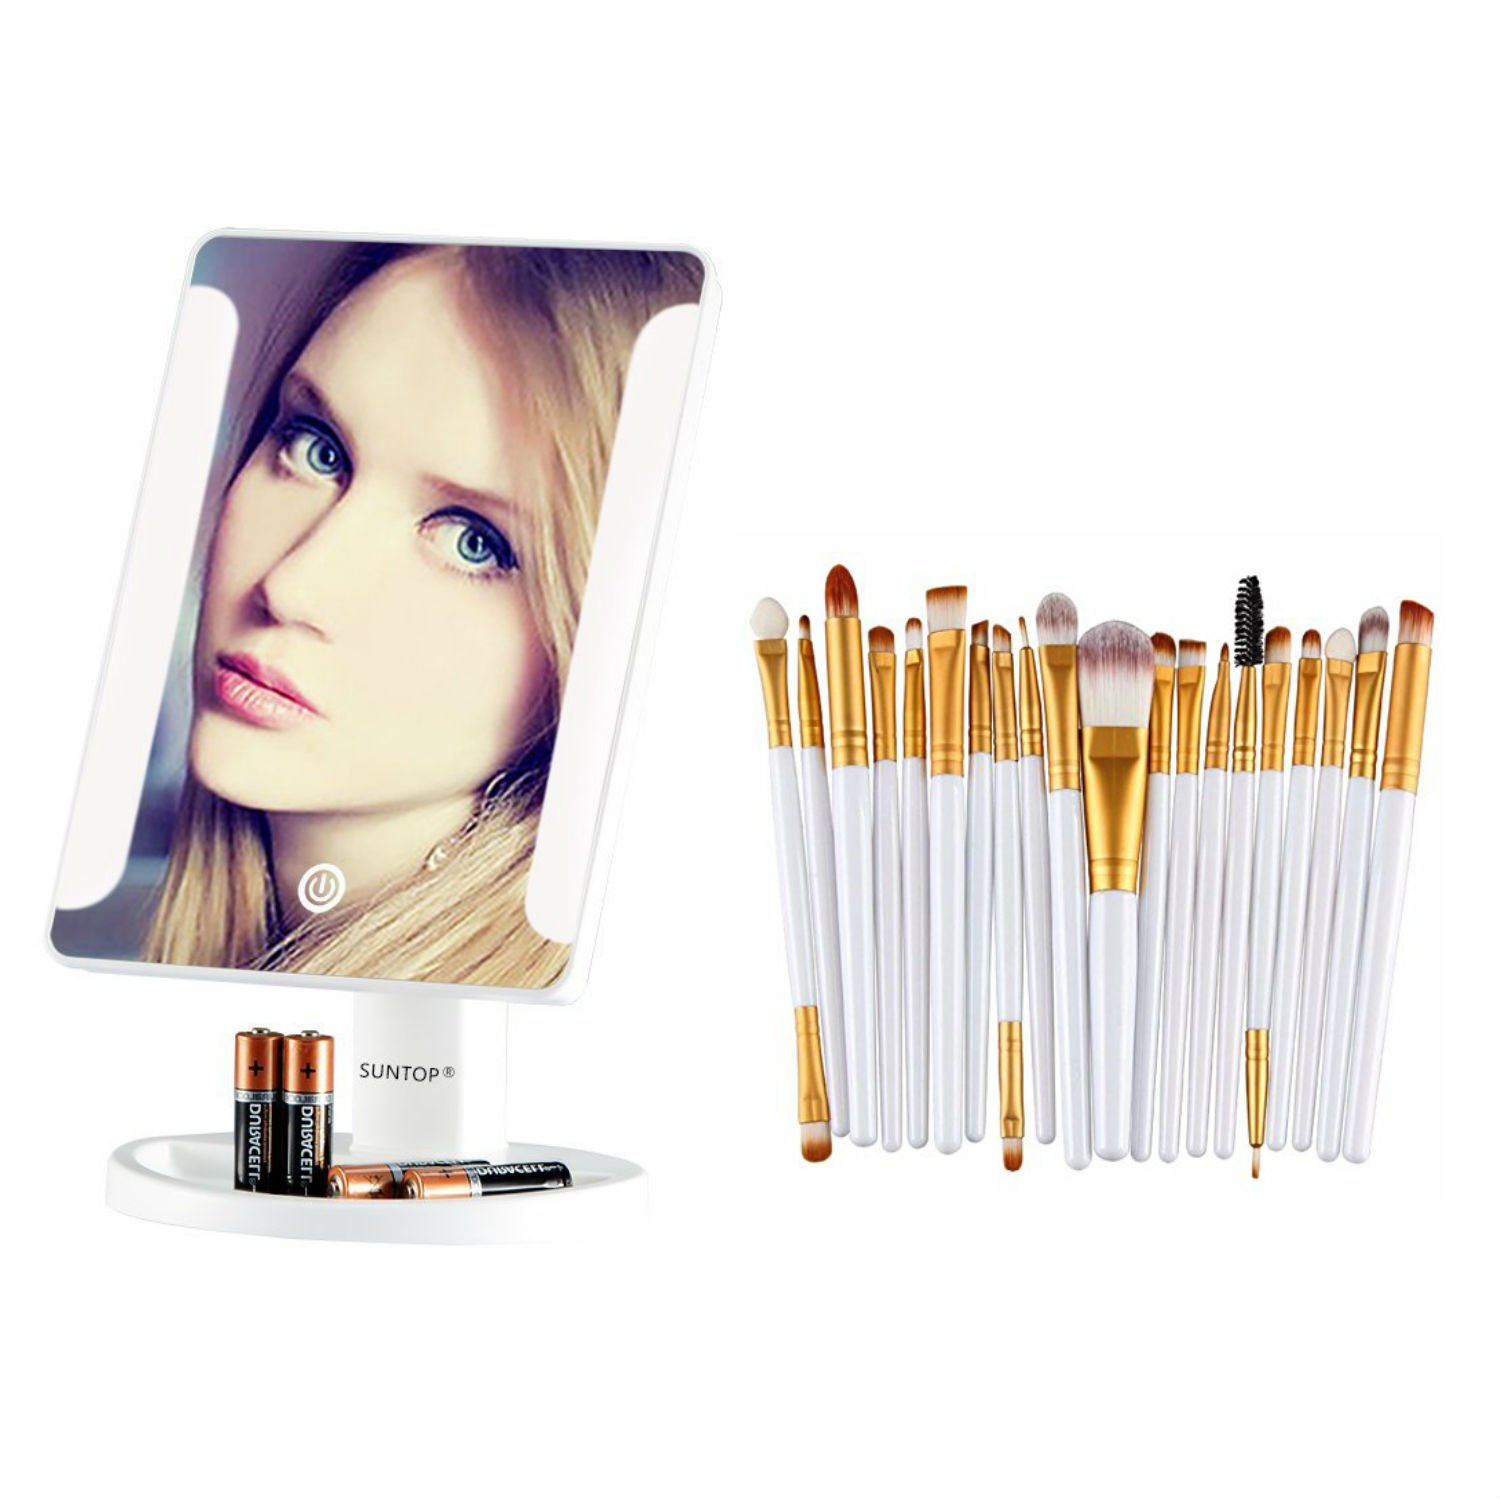 White Makeup Mirror with 8 Led Vanity & 20 Gold brushes set